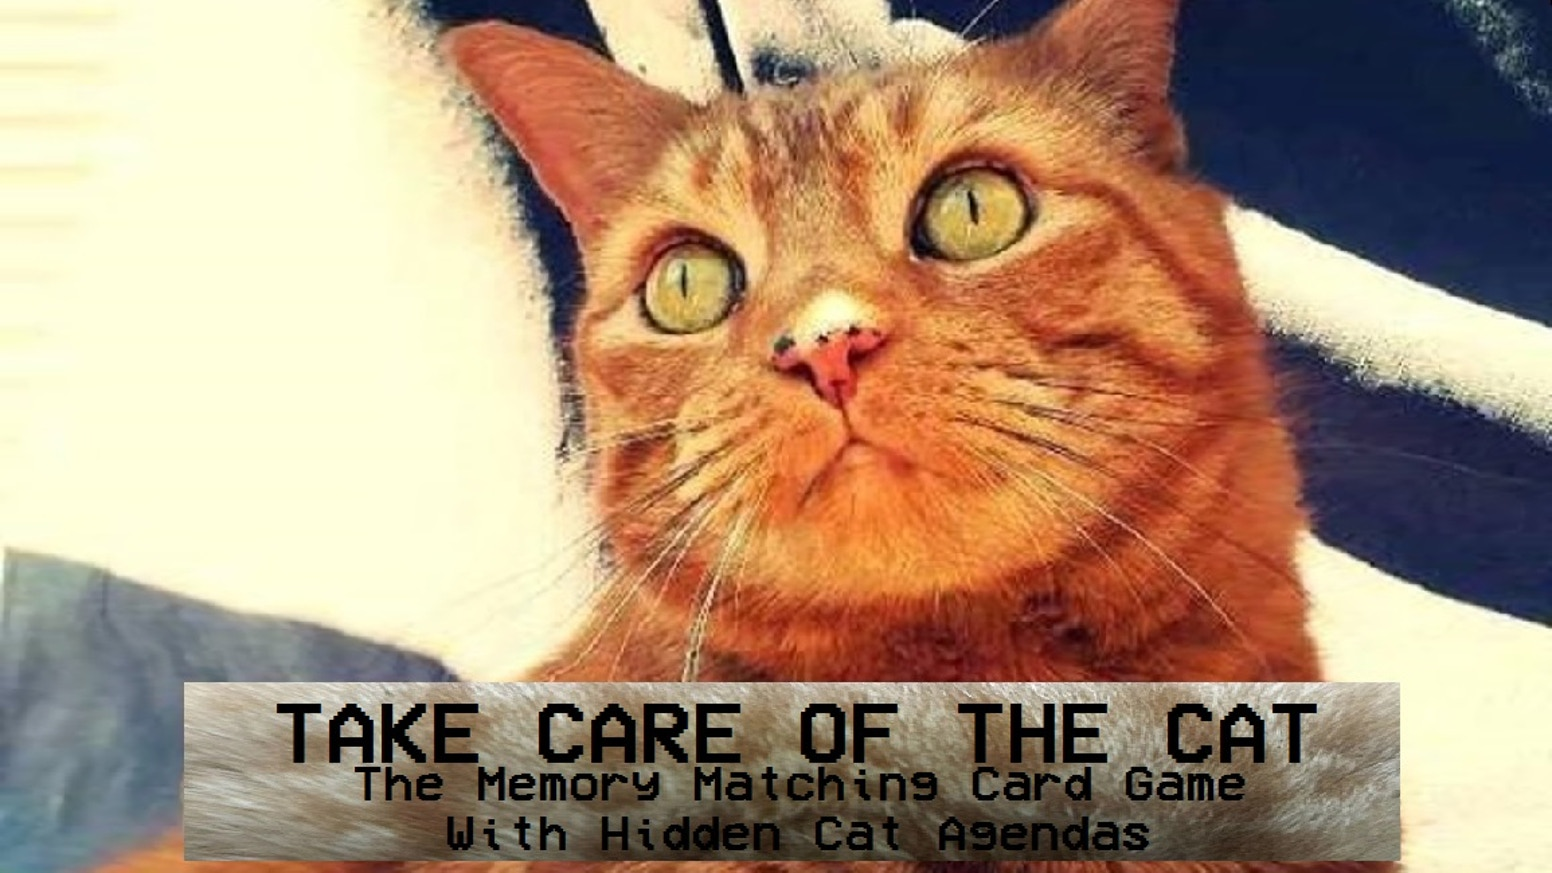 The memory matching card game with hidden cat agendas